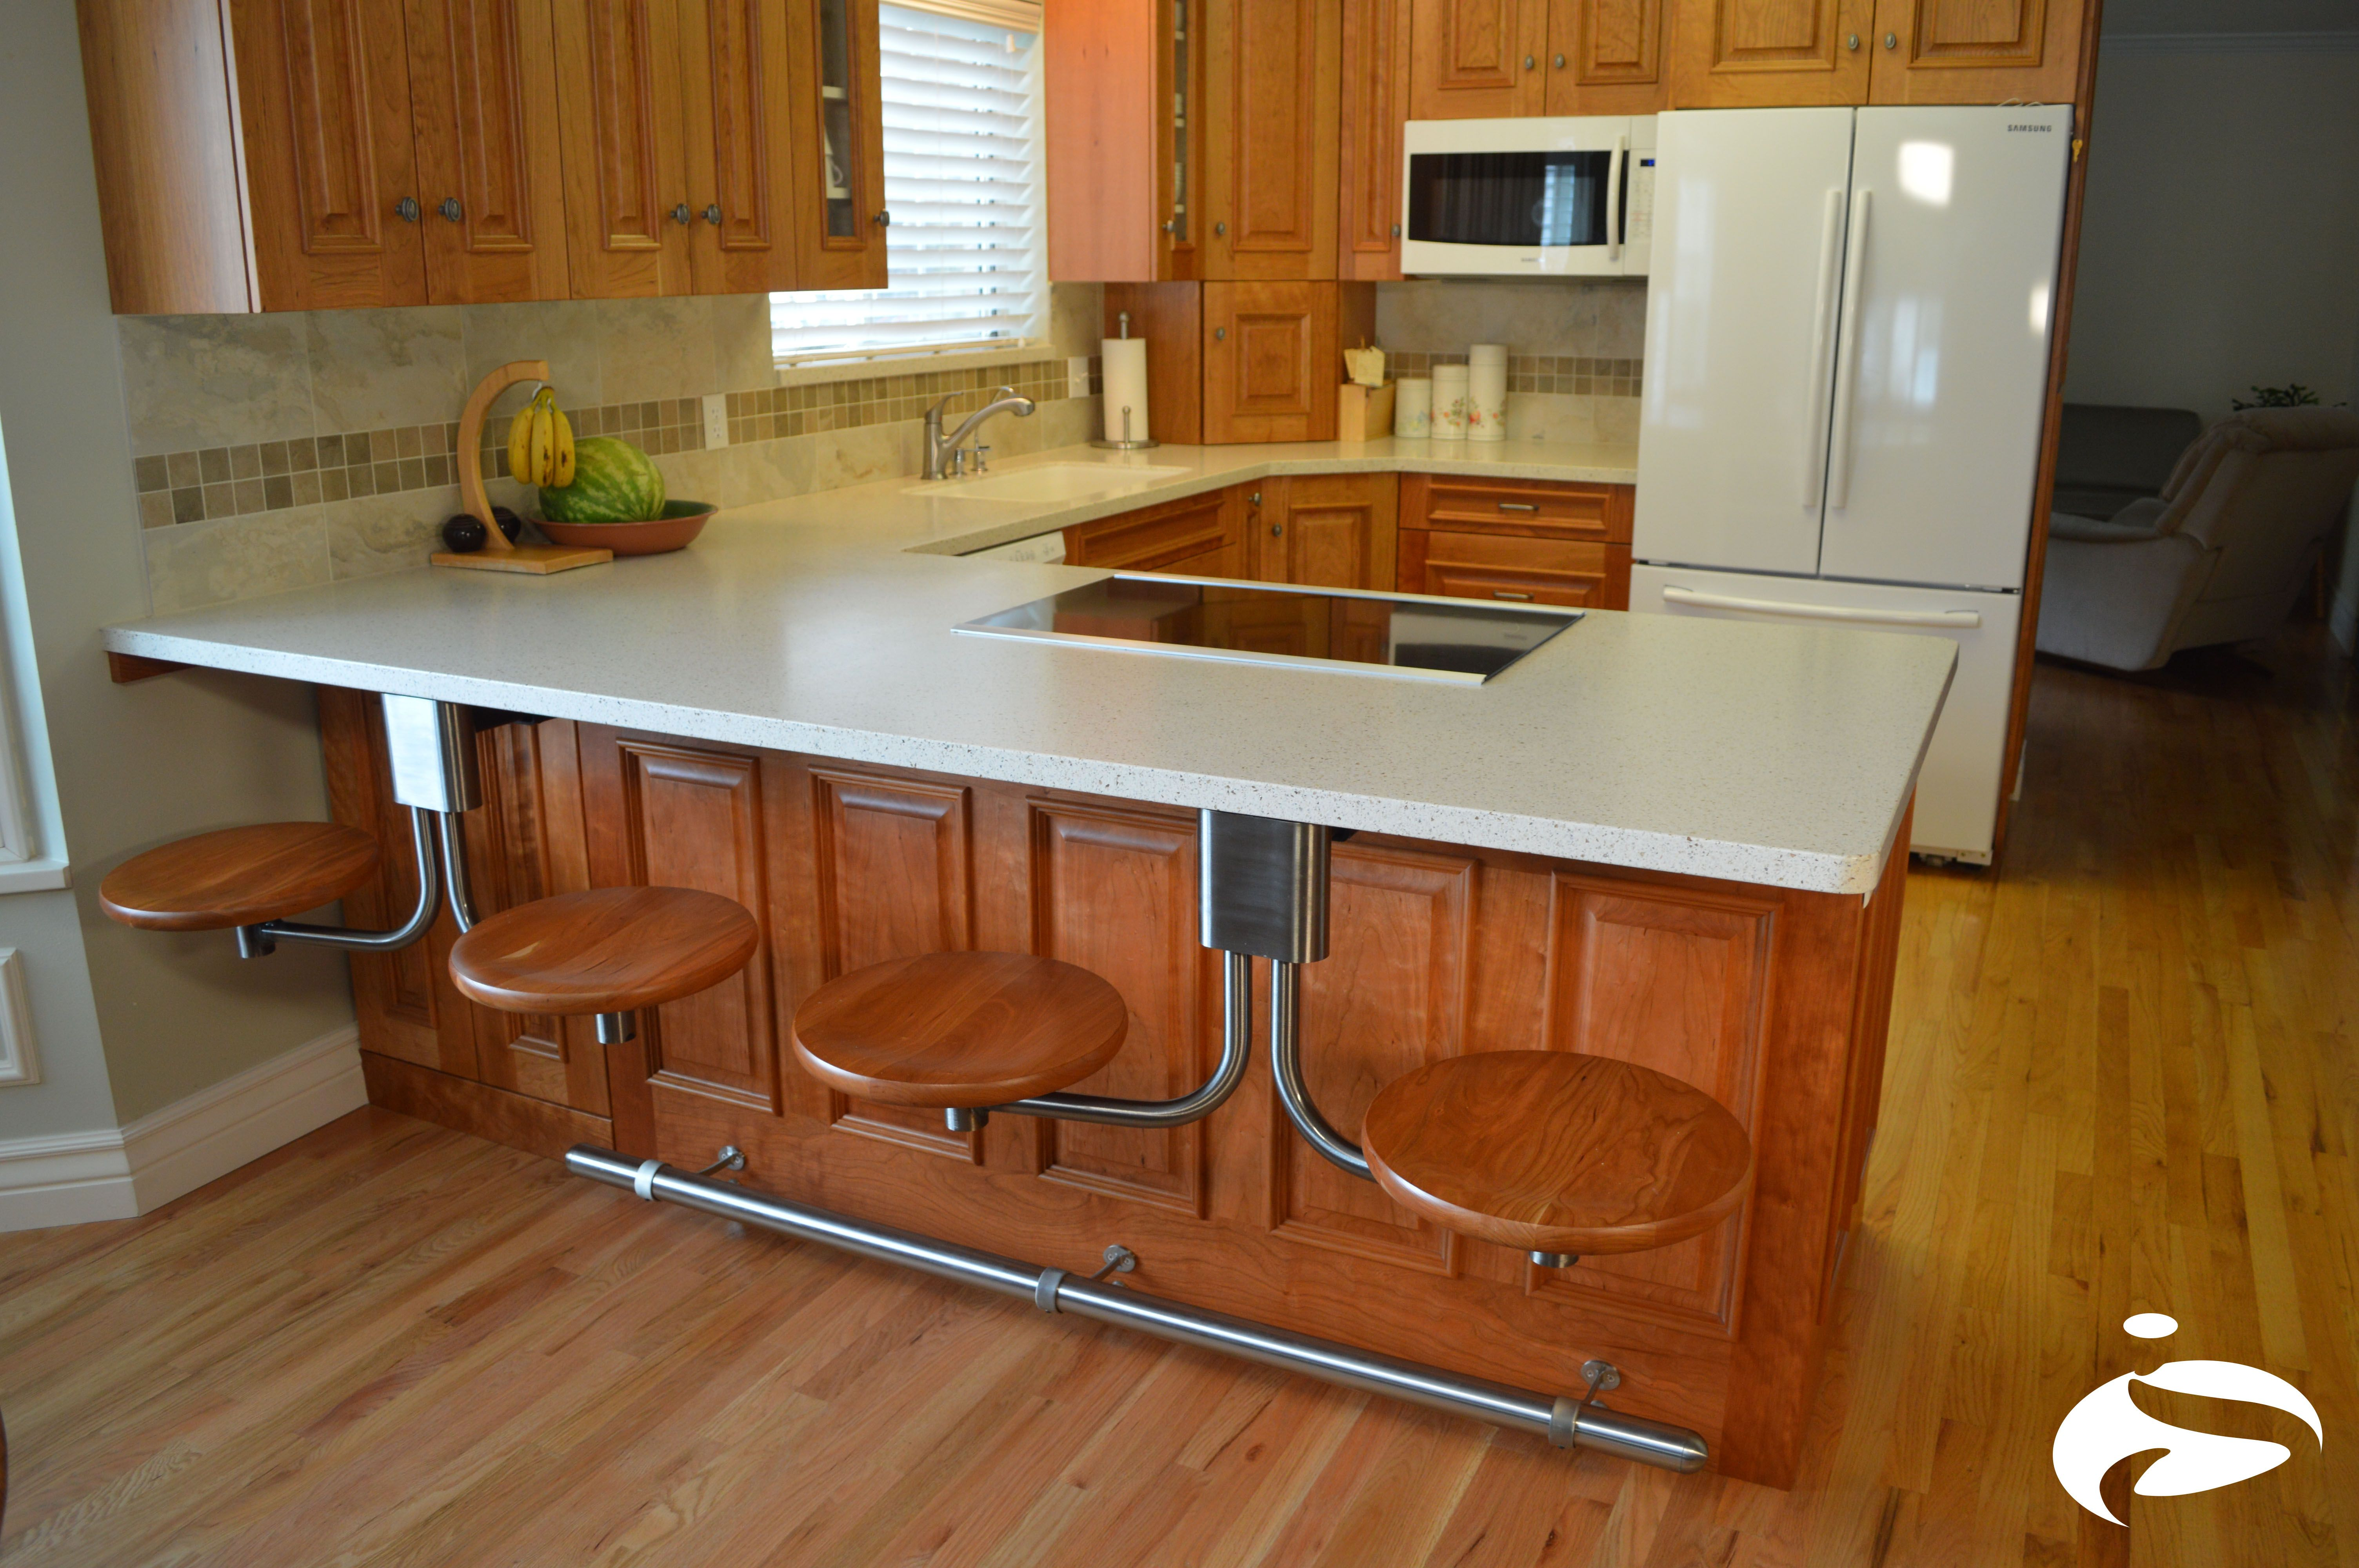 Round Stools Are A Great Solution For A Small Kitchen